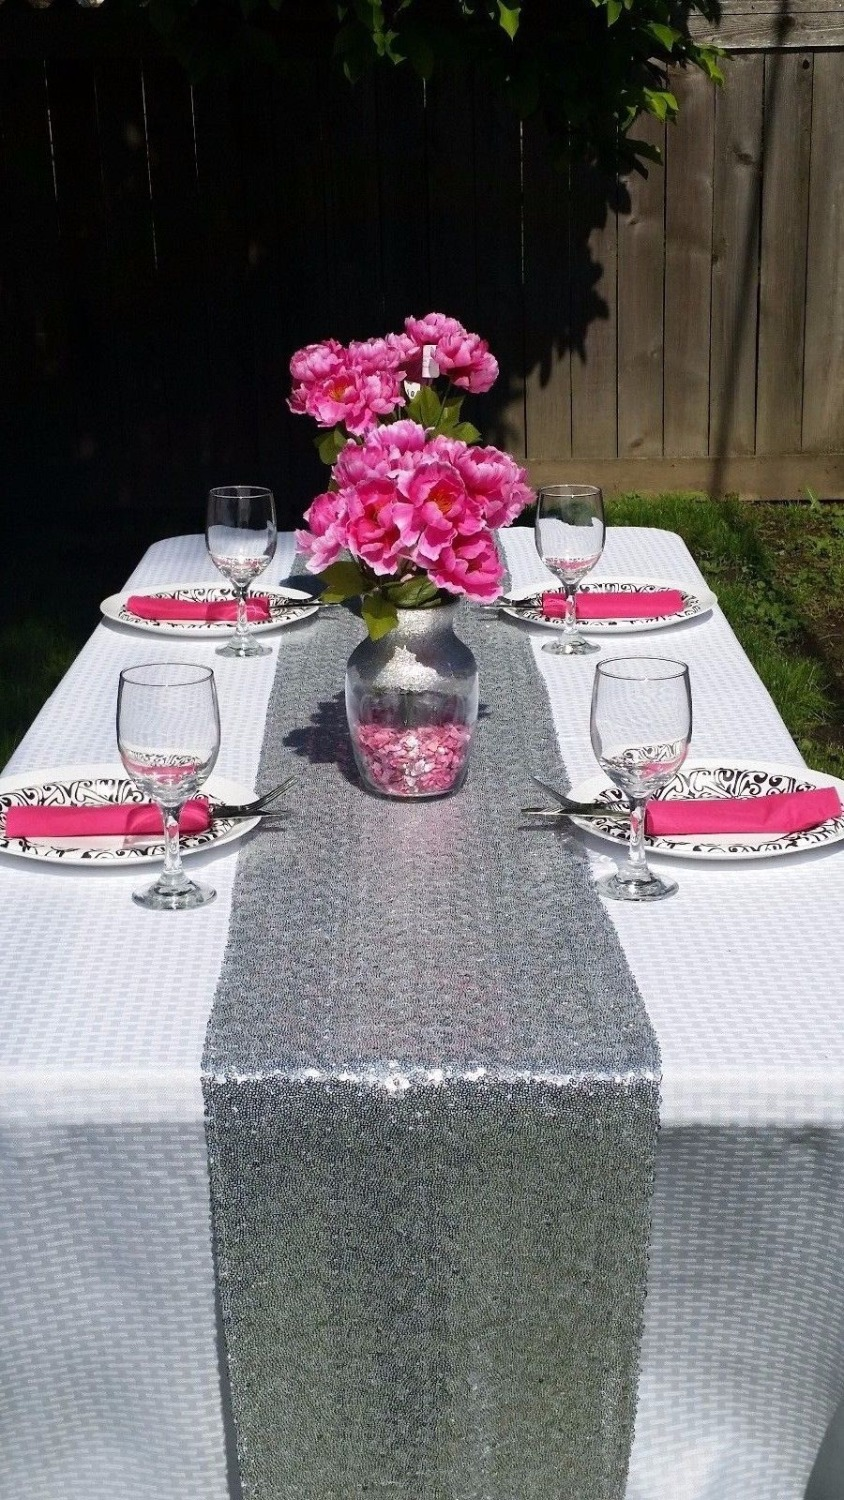 Aliexpress.com : Buy Factory Hot Selling Silver Sequin Table Runner For  Wedding/Event/Party/Banquet/Christmas Decoraitons 30cm by 180cm from  Reliable sequin ... - Aliexpress.com : Buy Factory Hot Selling Silver Sequin Table